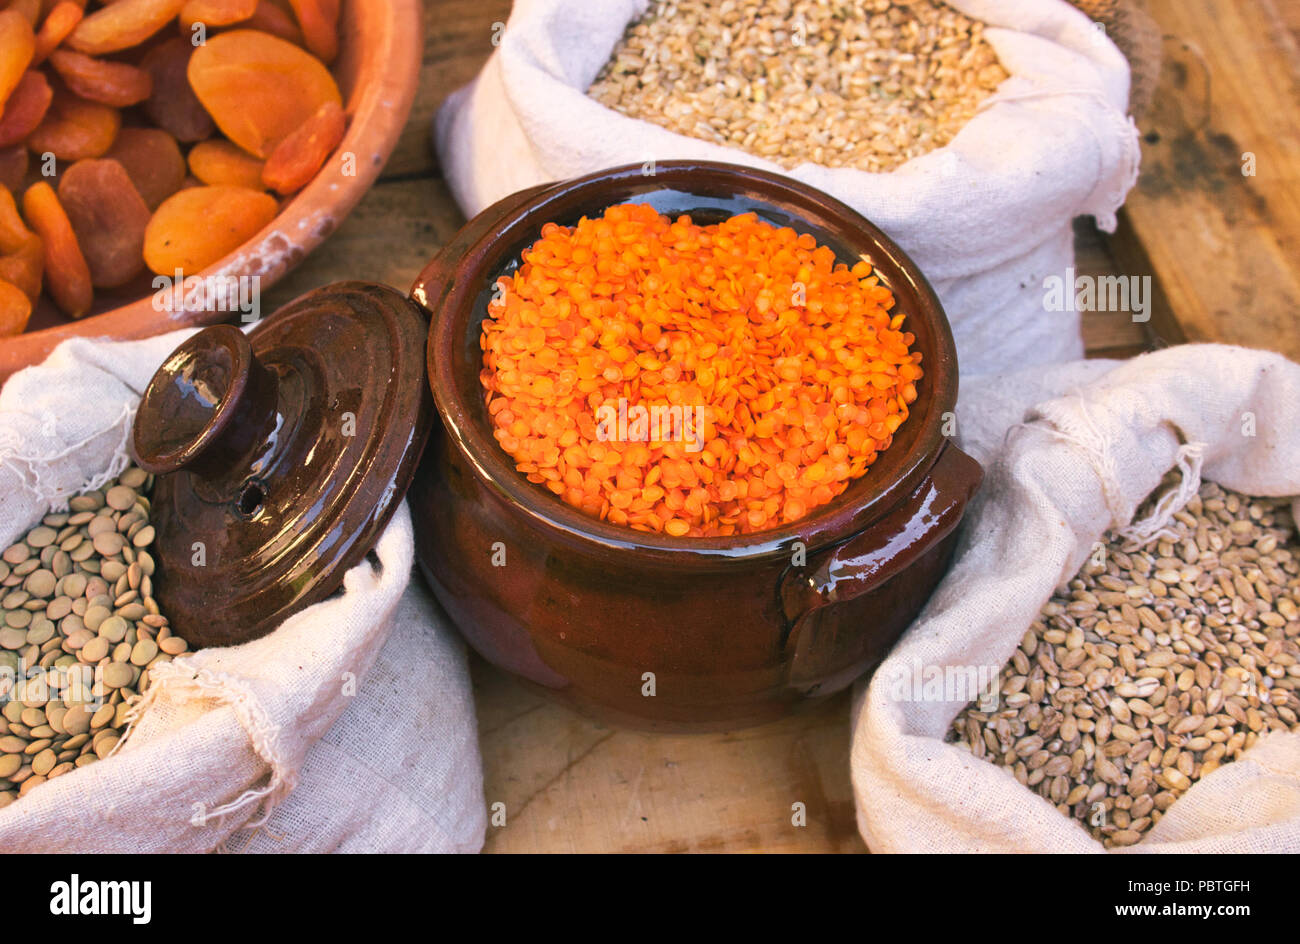 Ceramic clay pot with red lentils and sacks of legumes and grains in a food market stand - Stock Image